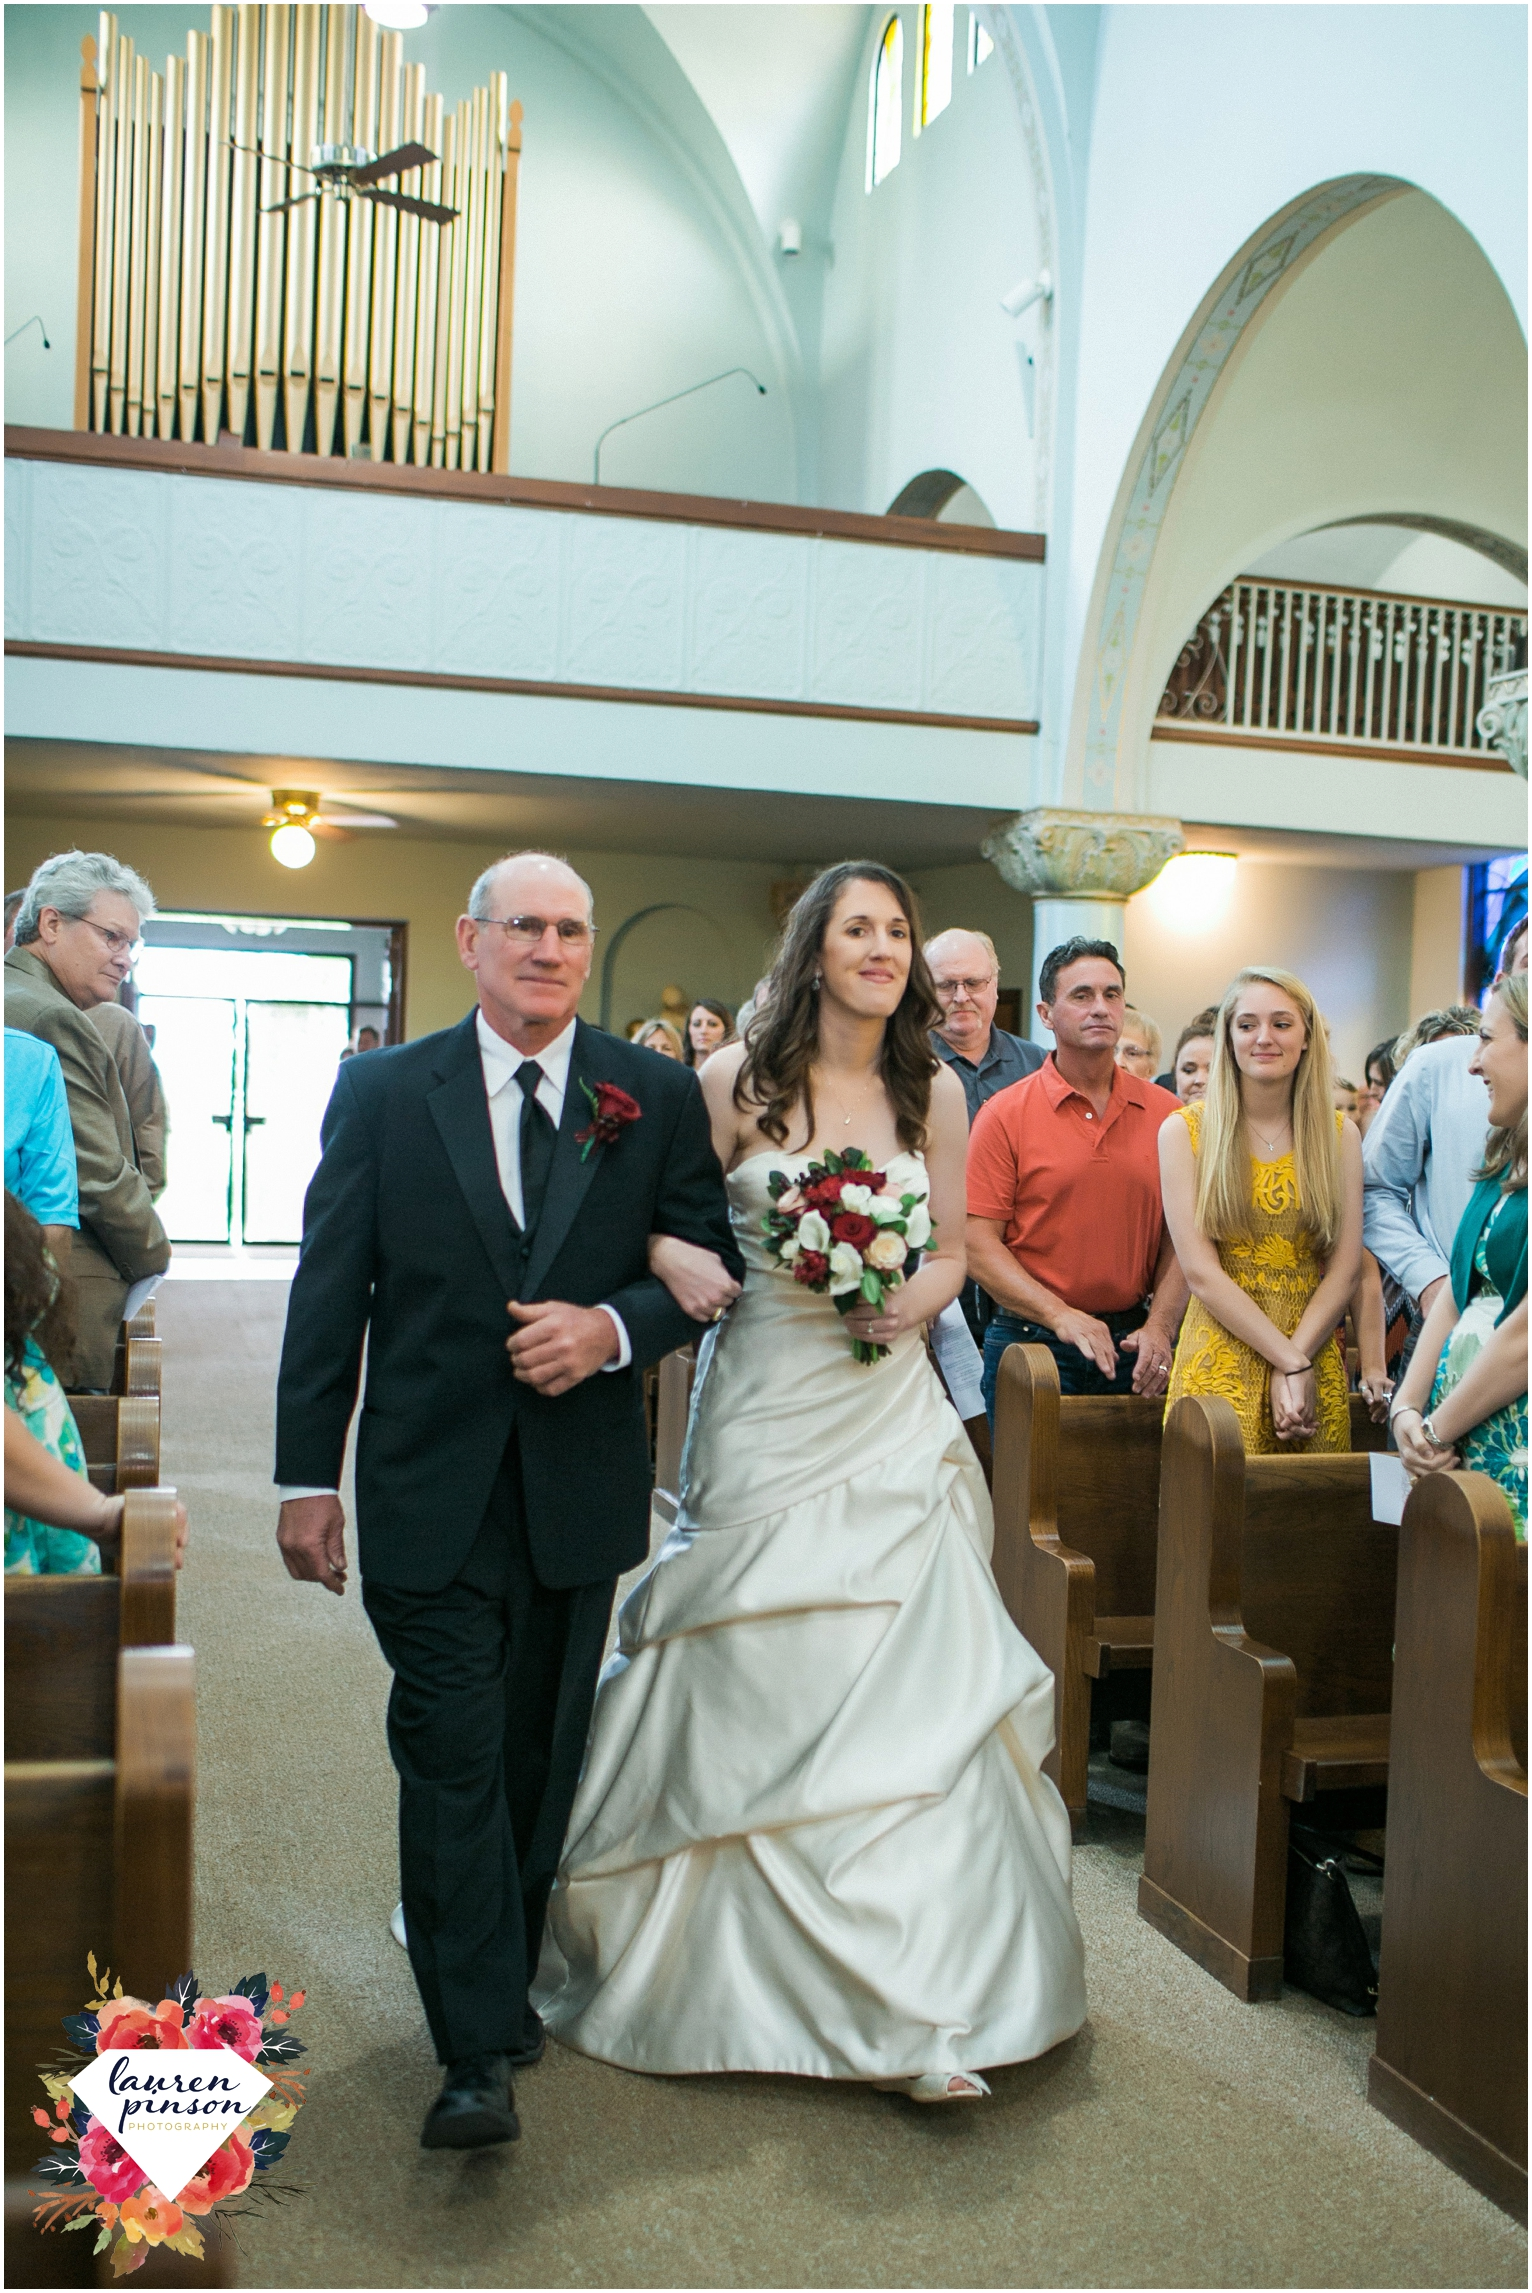 wichita-falls-wedding-photographer-OUR-Lady-queen-of-peace-catholic-wedding-the-forum-photography_0927.jpg